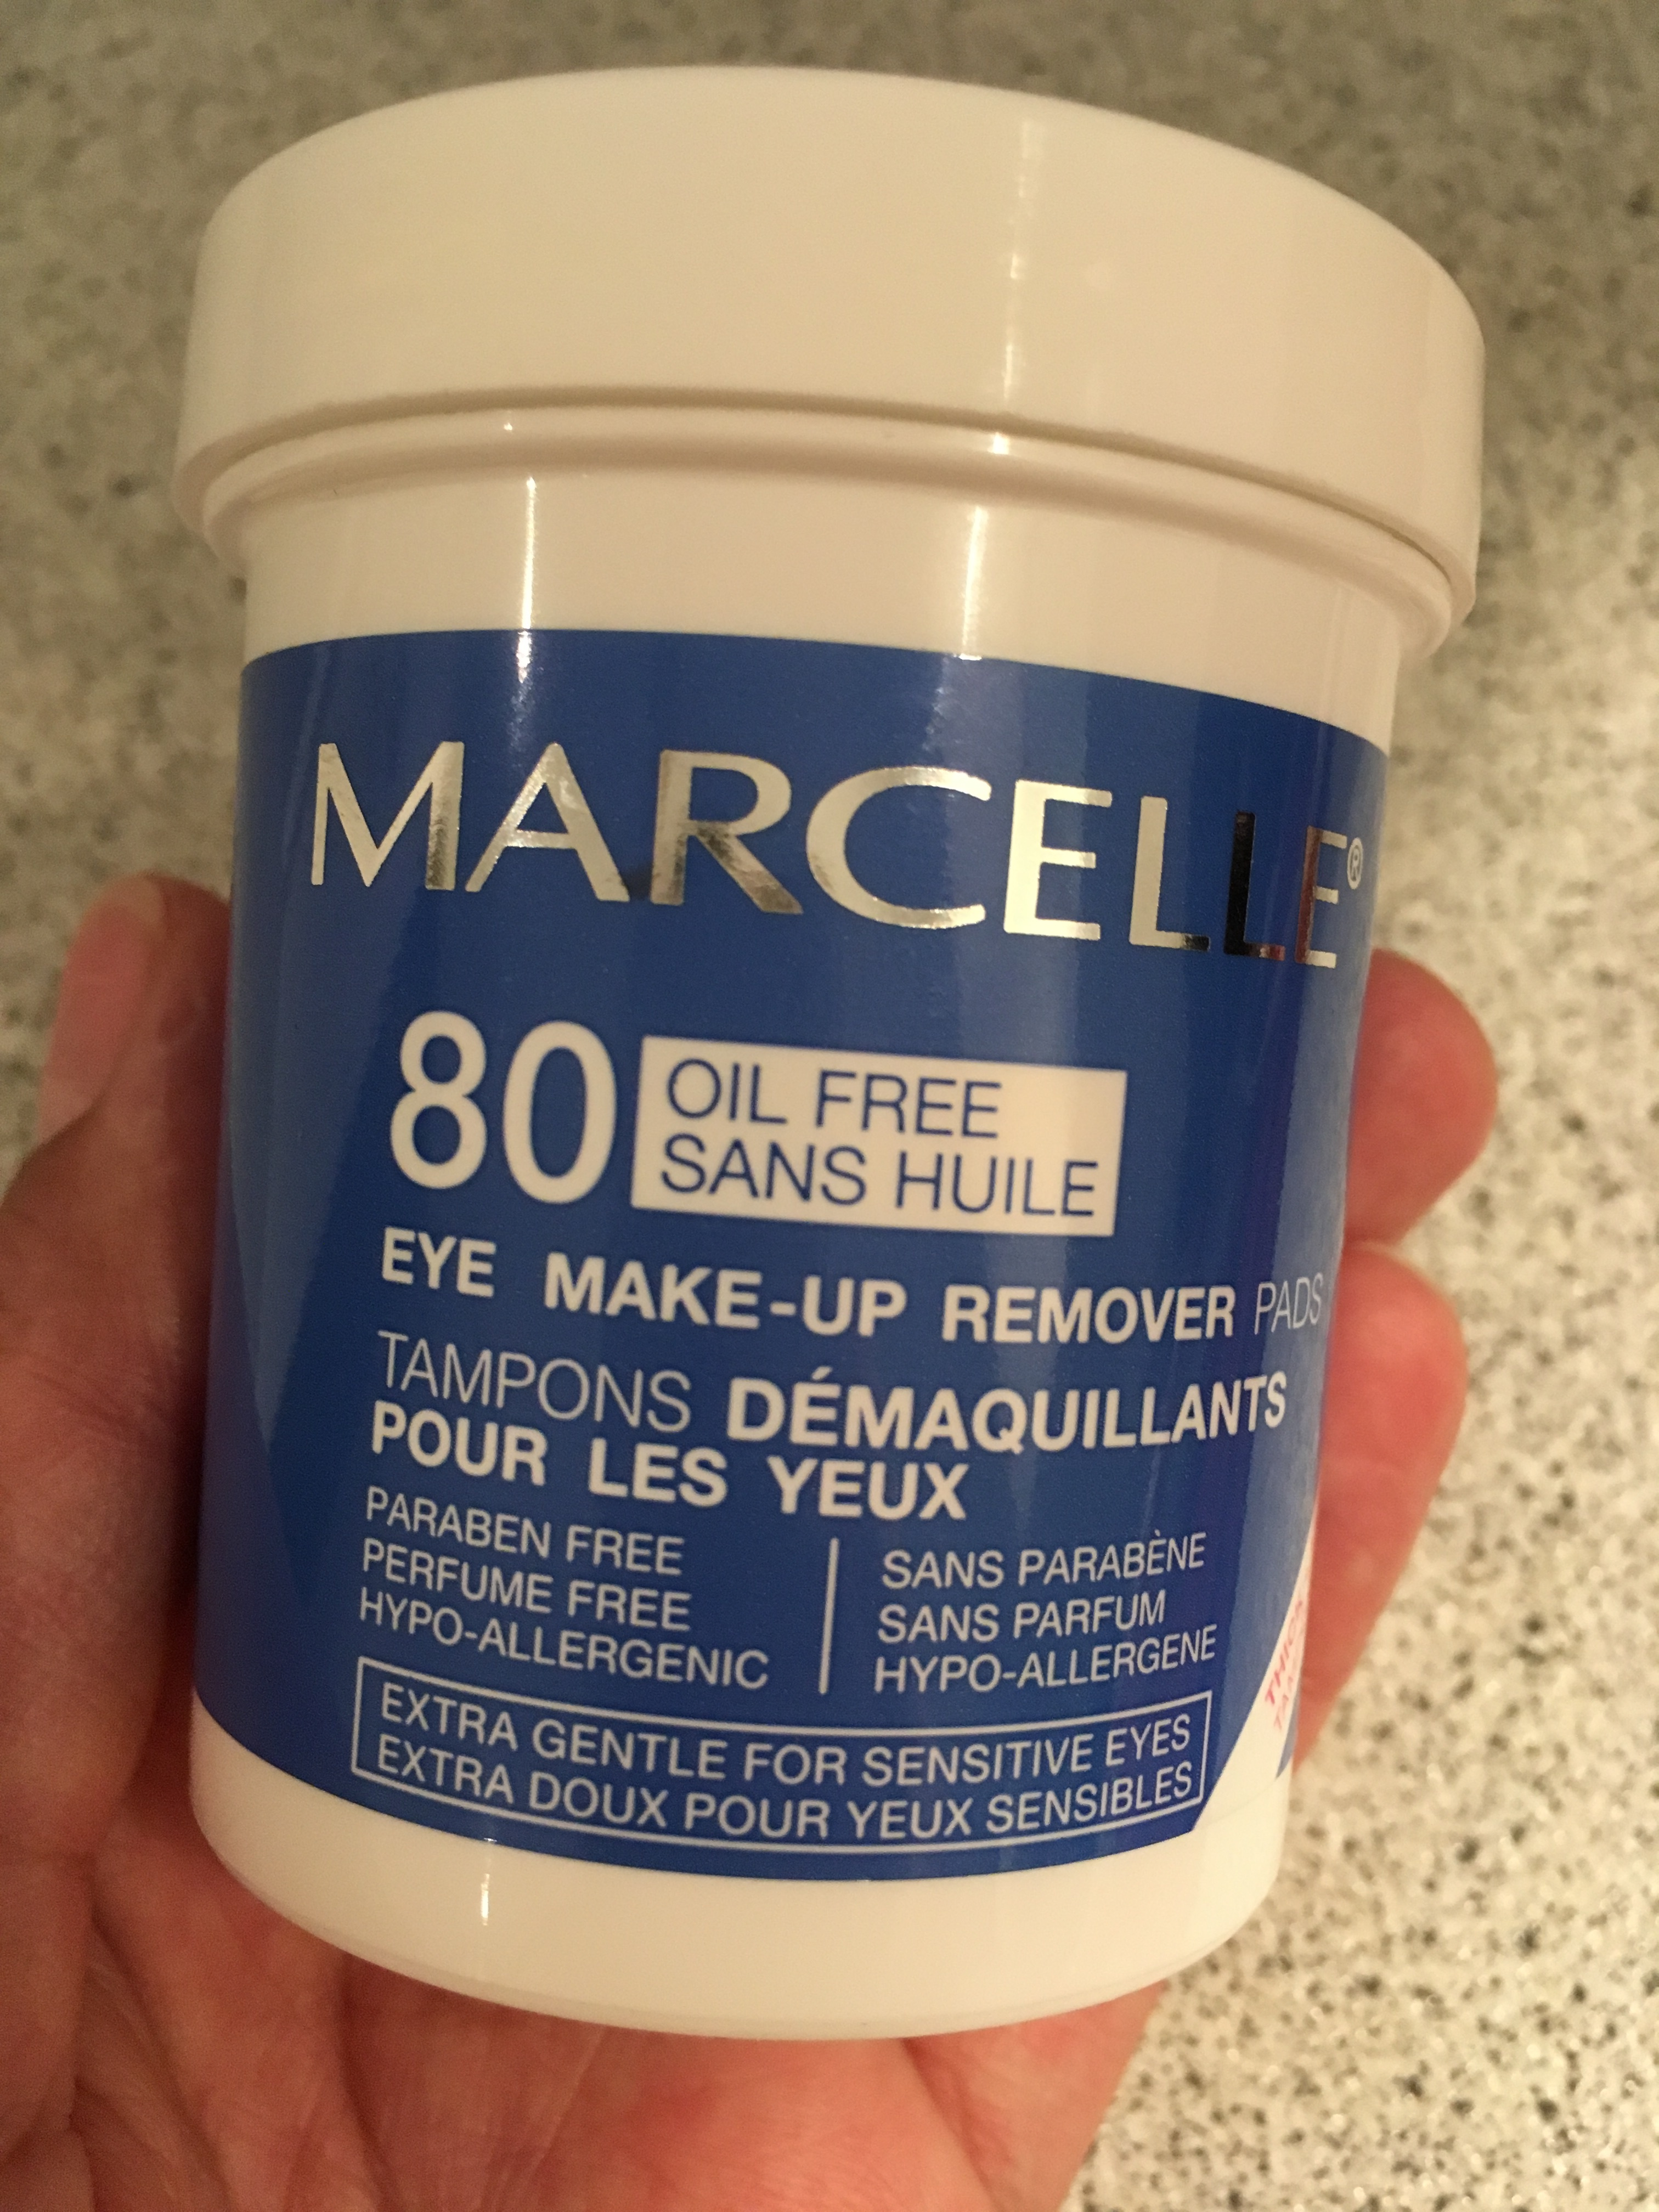 Marcelle Eye Make-up Remover Pads Reviews In Makeup Removers - ChickAdvisor